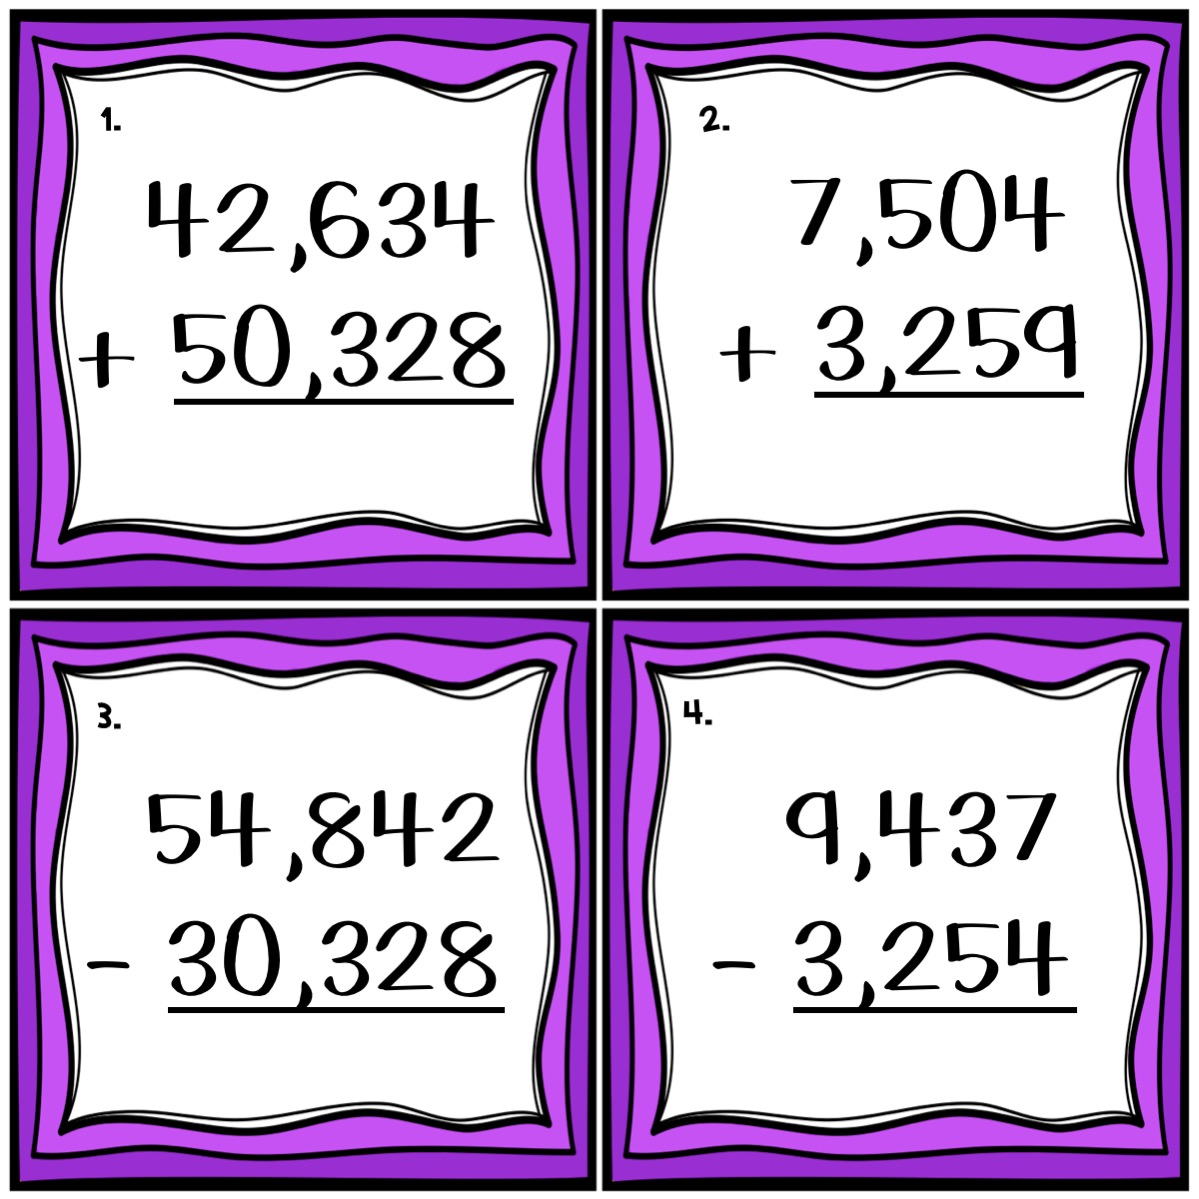 4-digit and 5-digit addition and subtraction